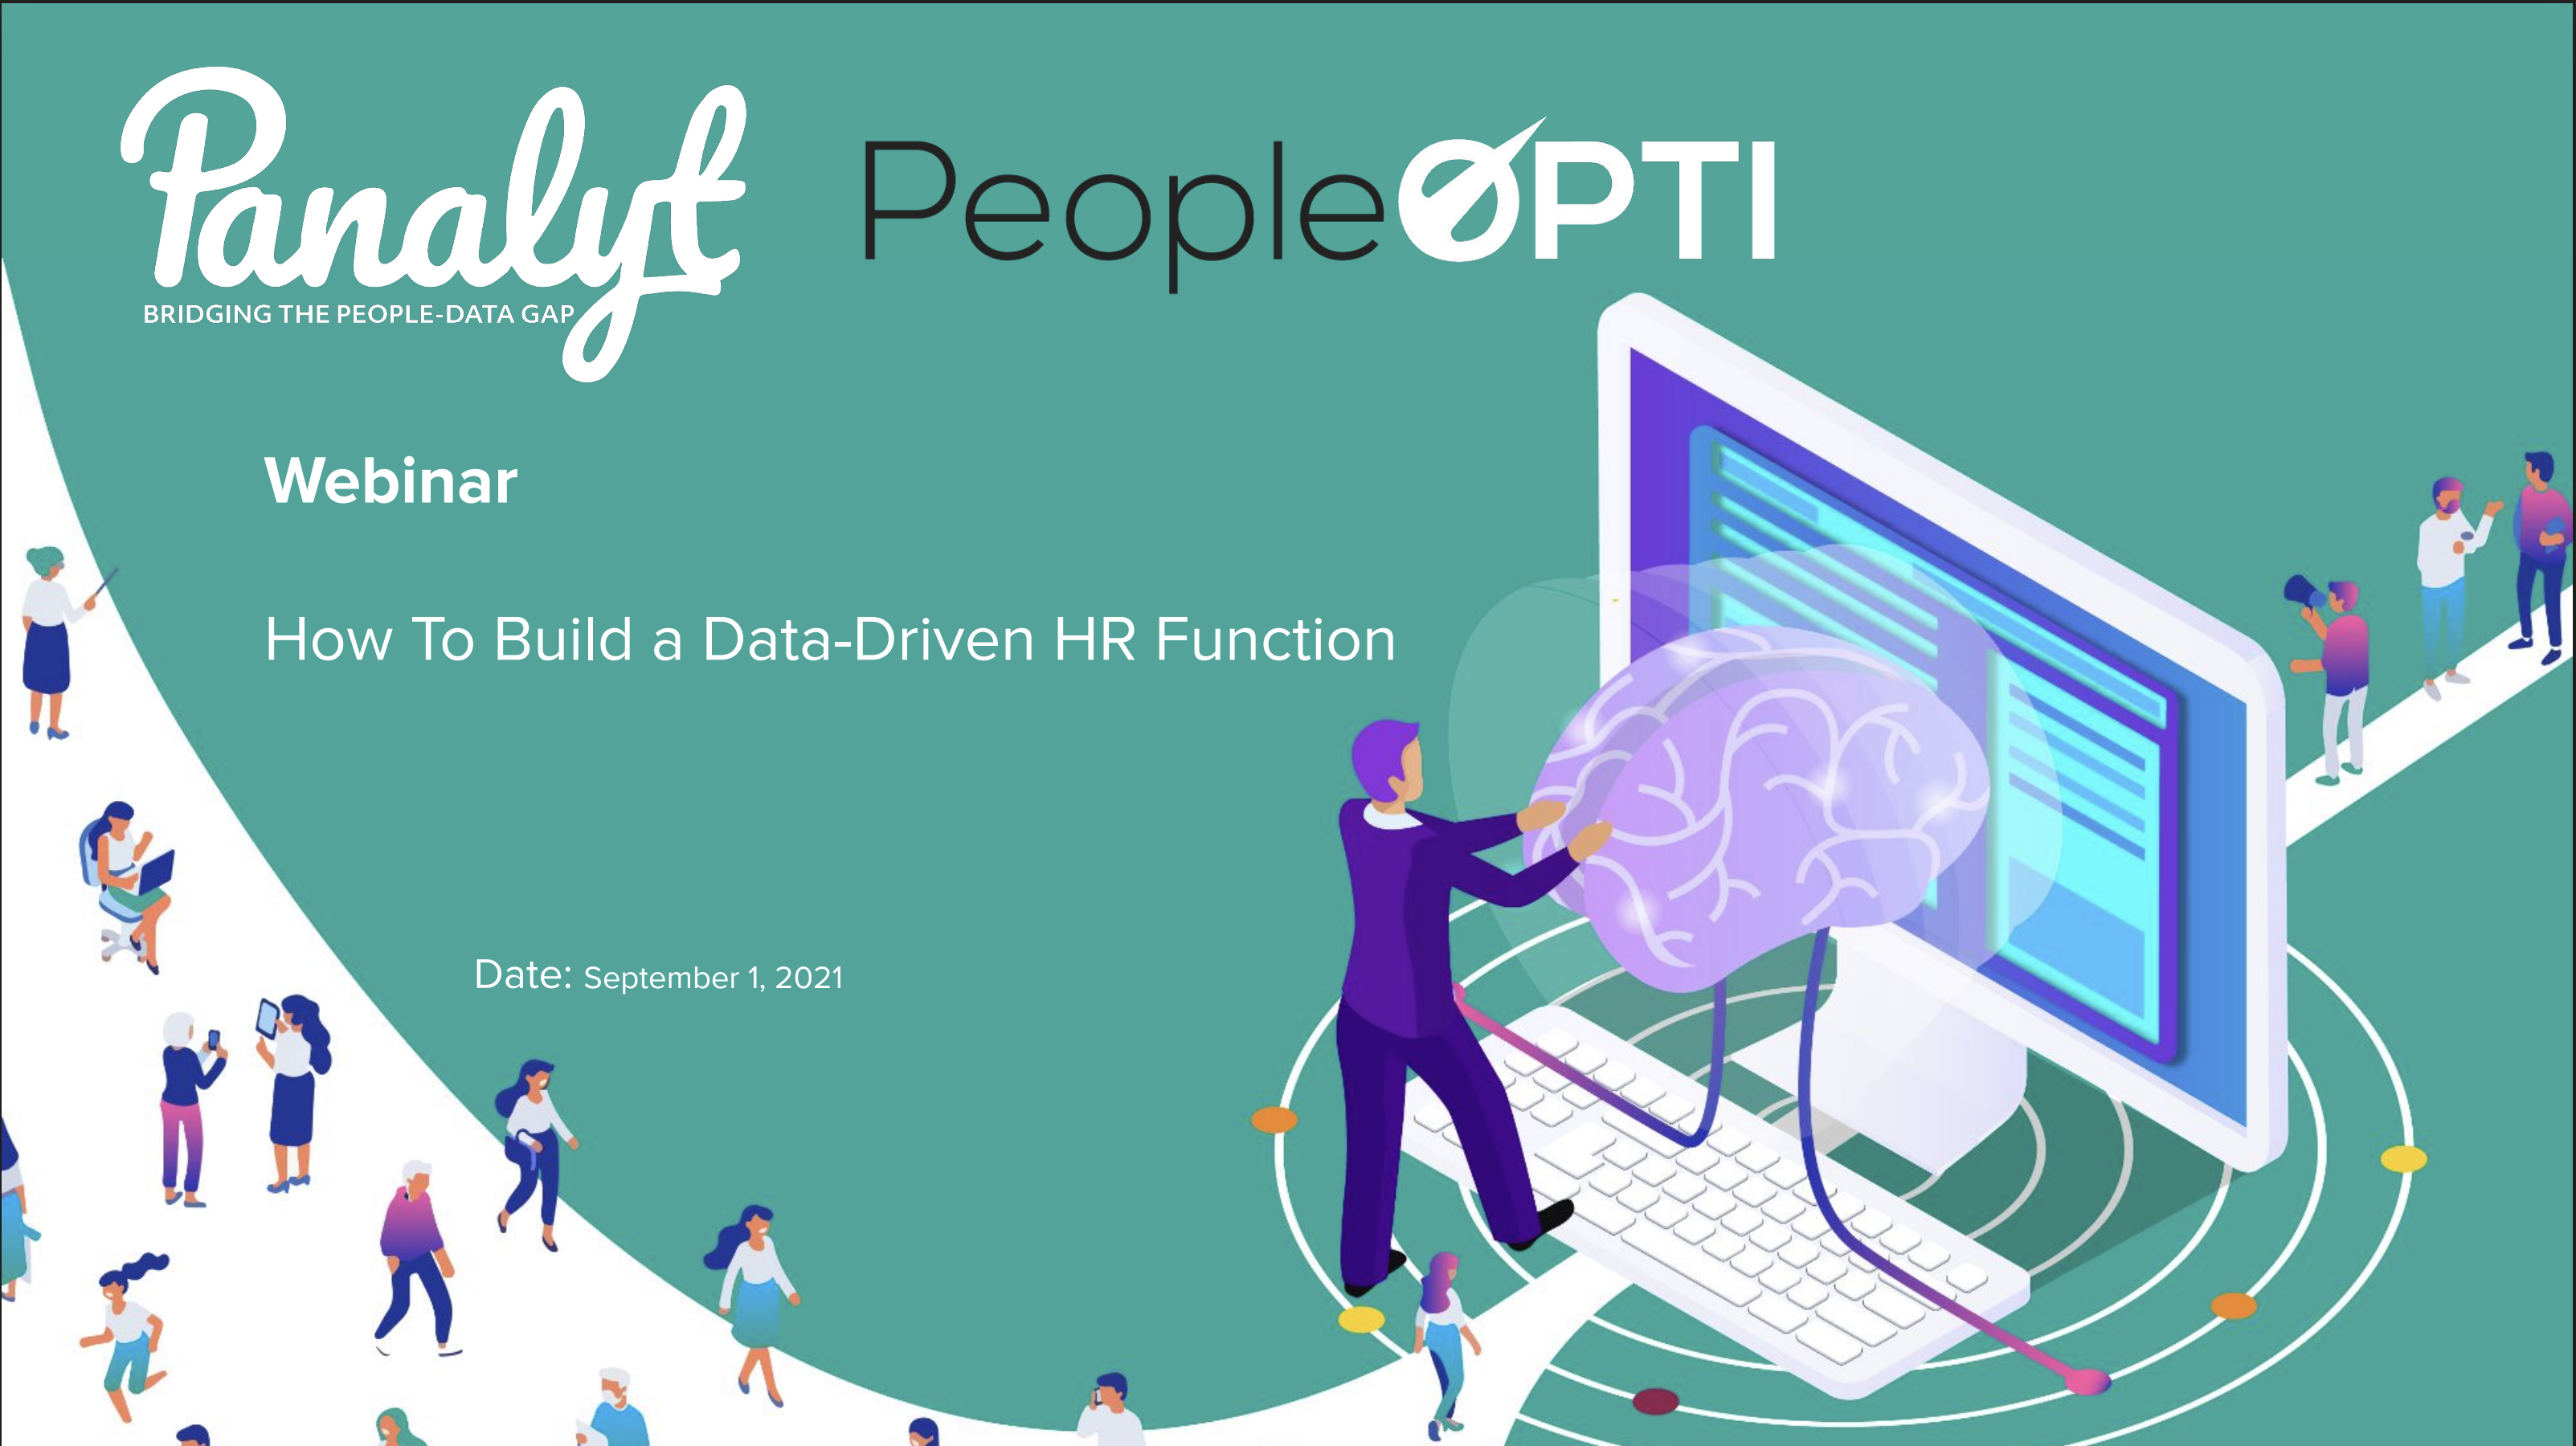 How To Build a Data-Driven HR Function